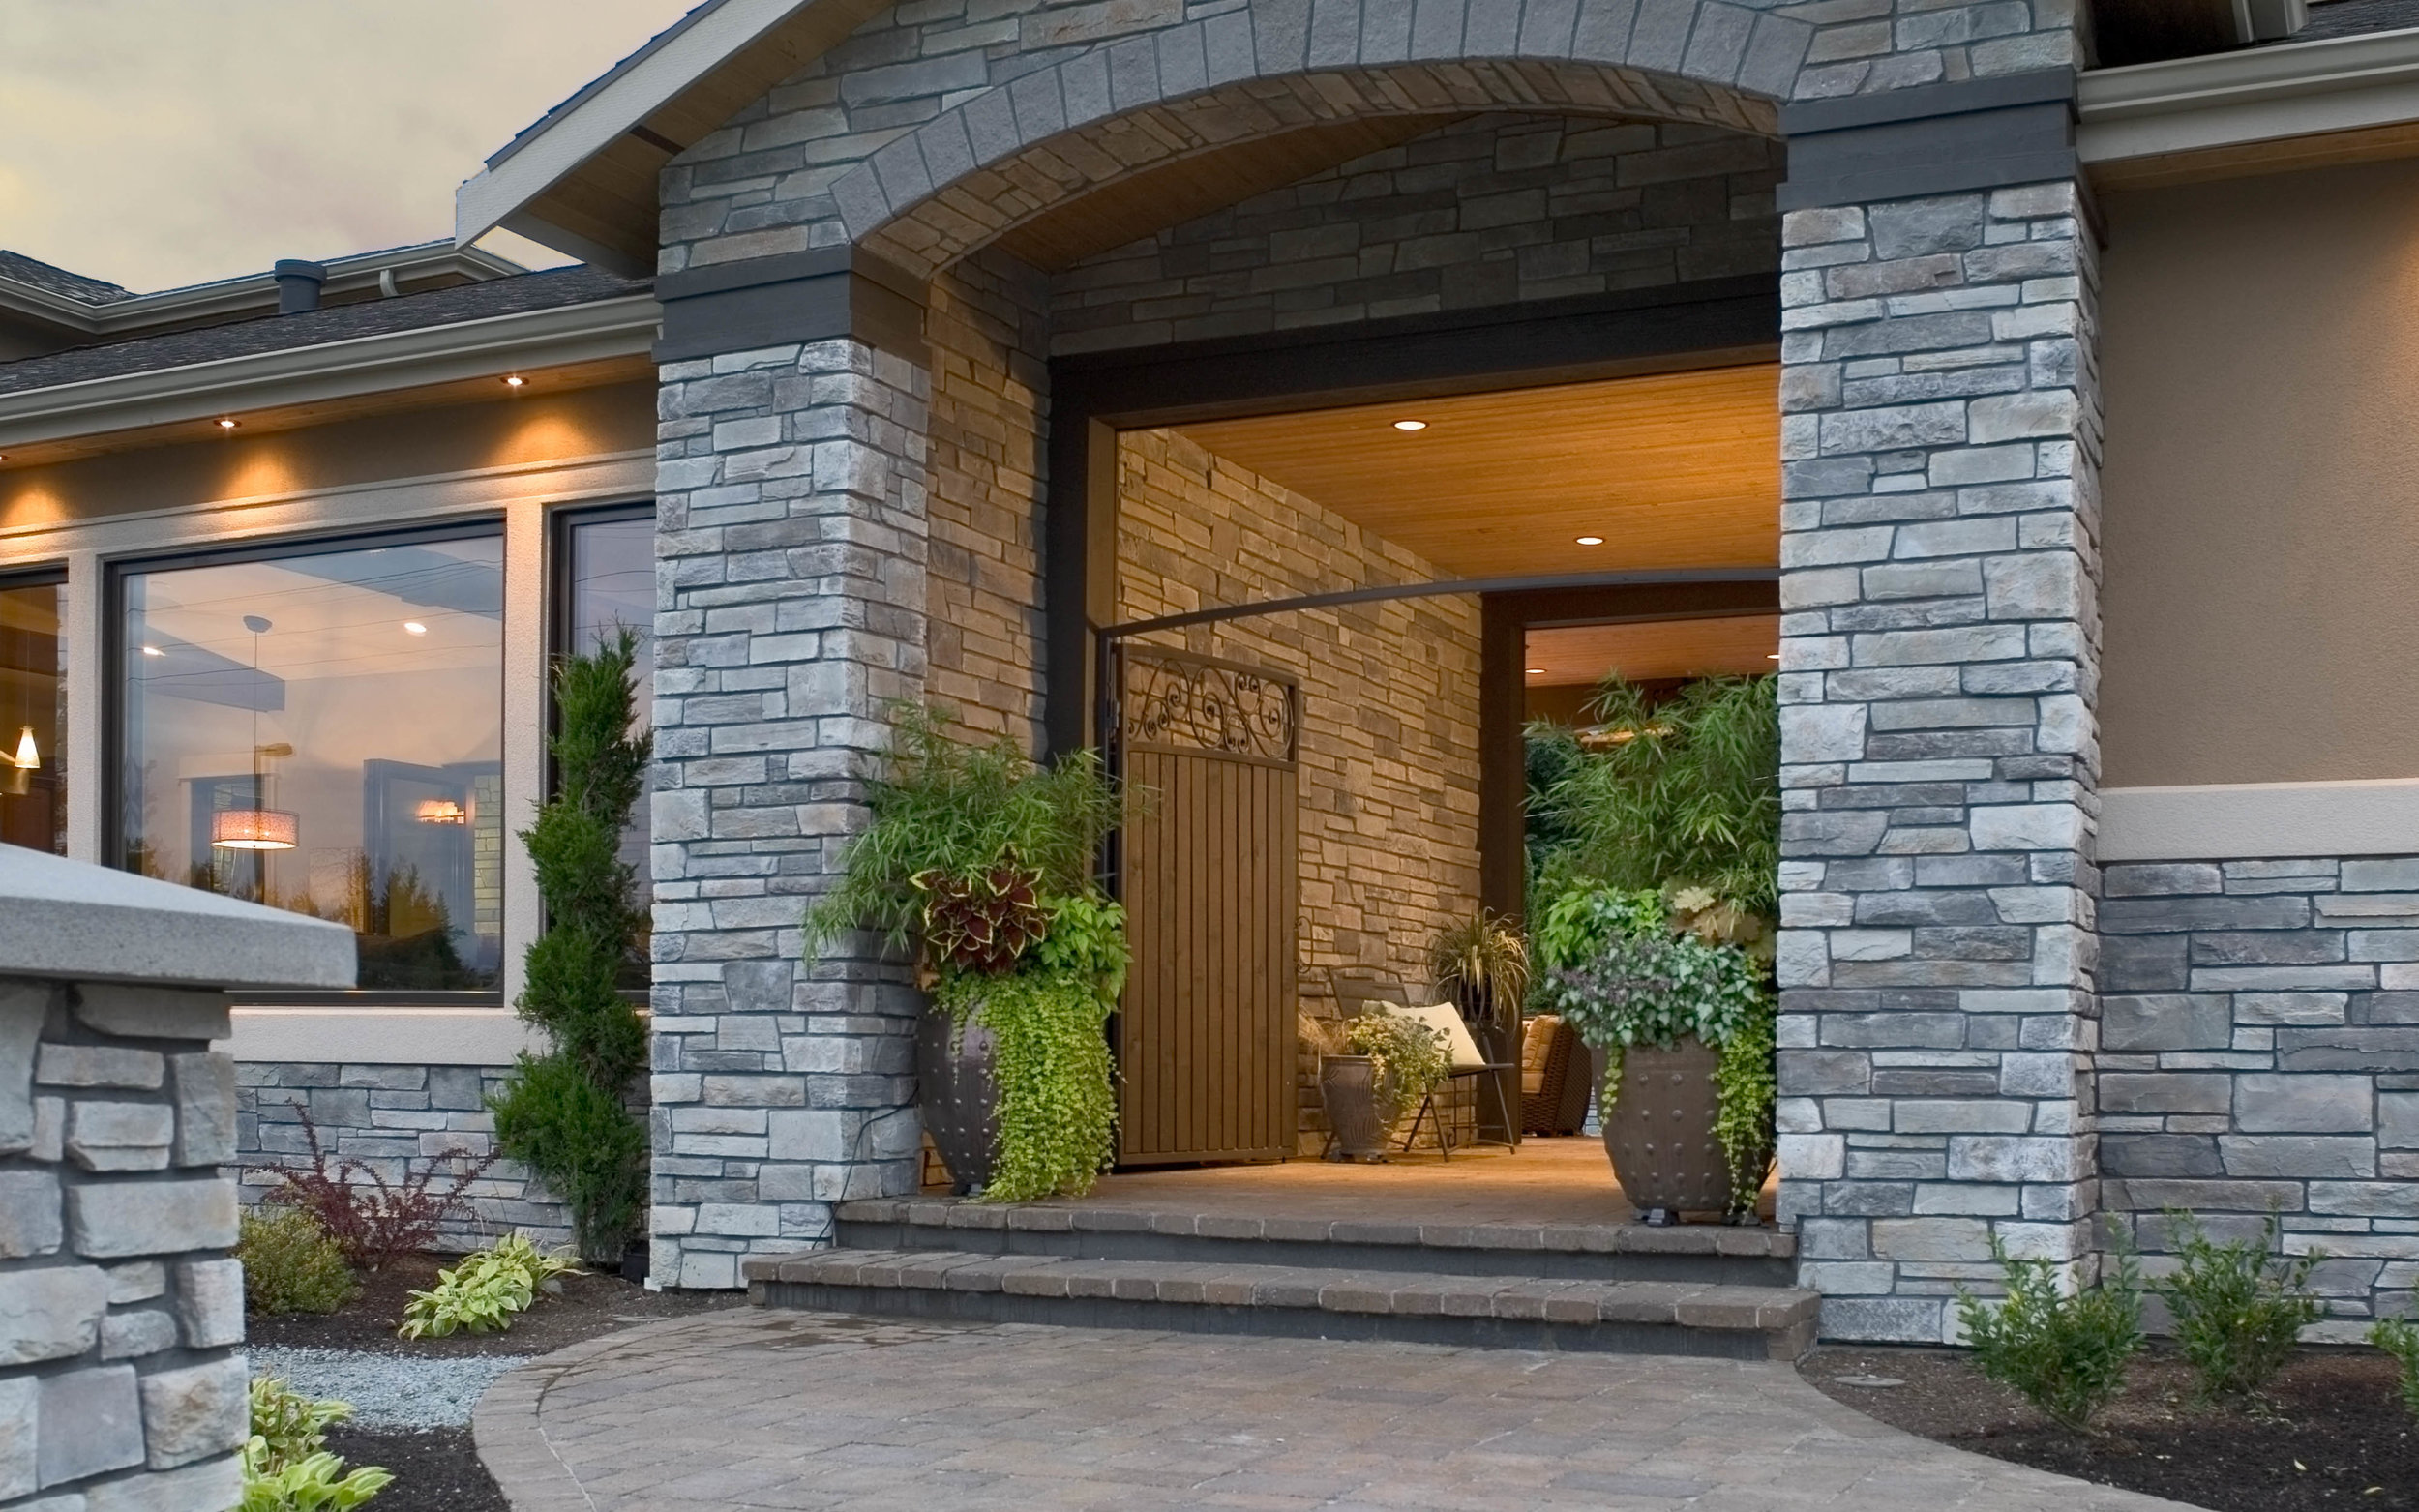 Cultured Stone® by Boral® - For over 50 years Cultured Stone has been an industry leader providing quality and aesthetically pleasing products for any project you may have.